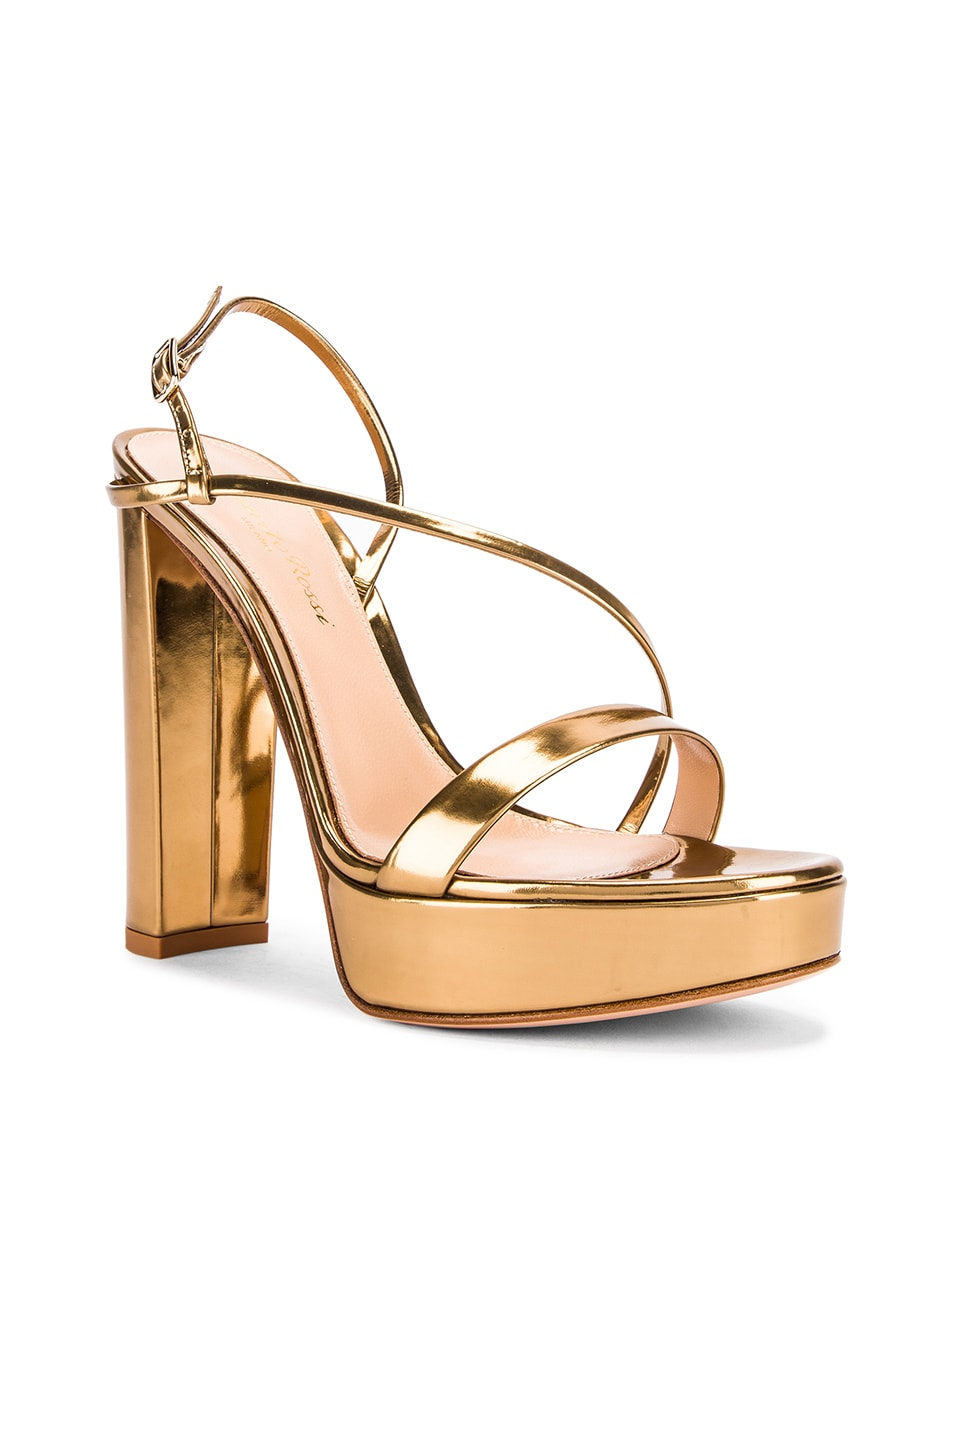 Image 2 of Gianvito Rossi Kimberly Strappy Sandal Heels in Gold